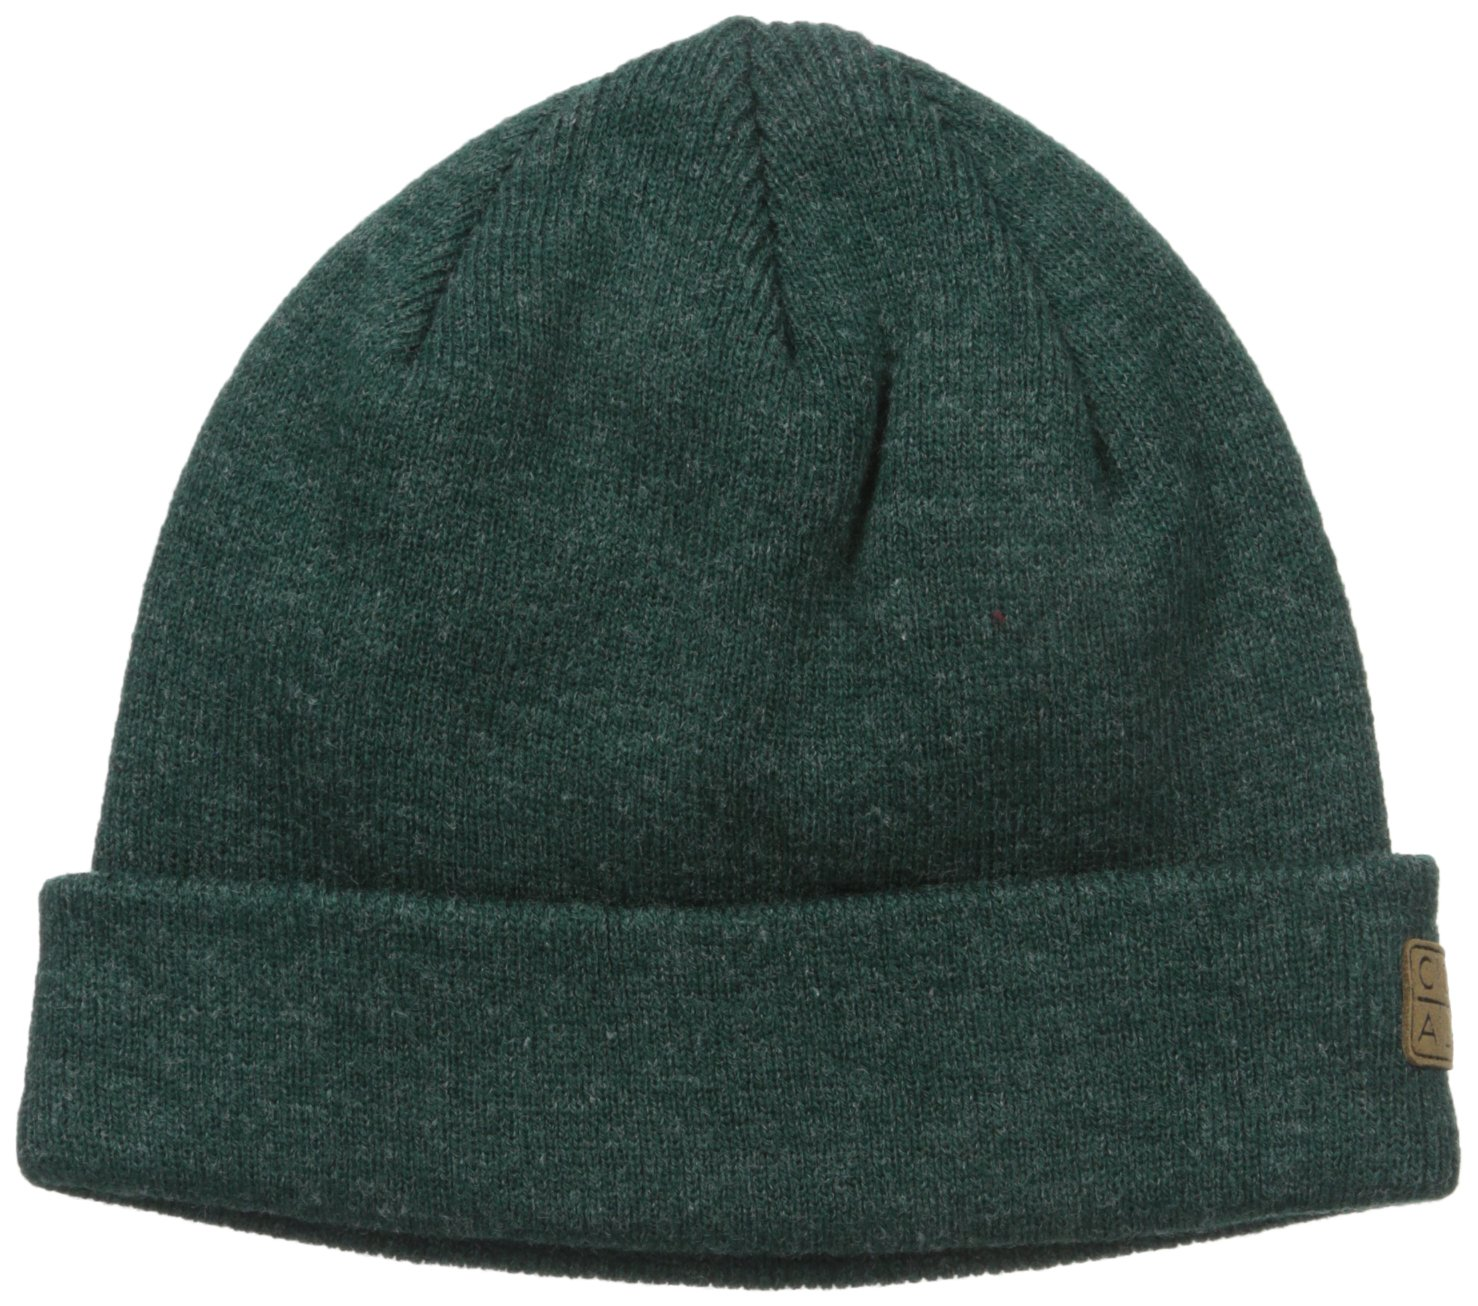 Coal Men's The Harbor Classic Fine Knit Cuffed Beanie Hat, Heather Forest Green, One Size